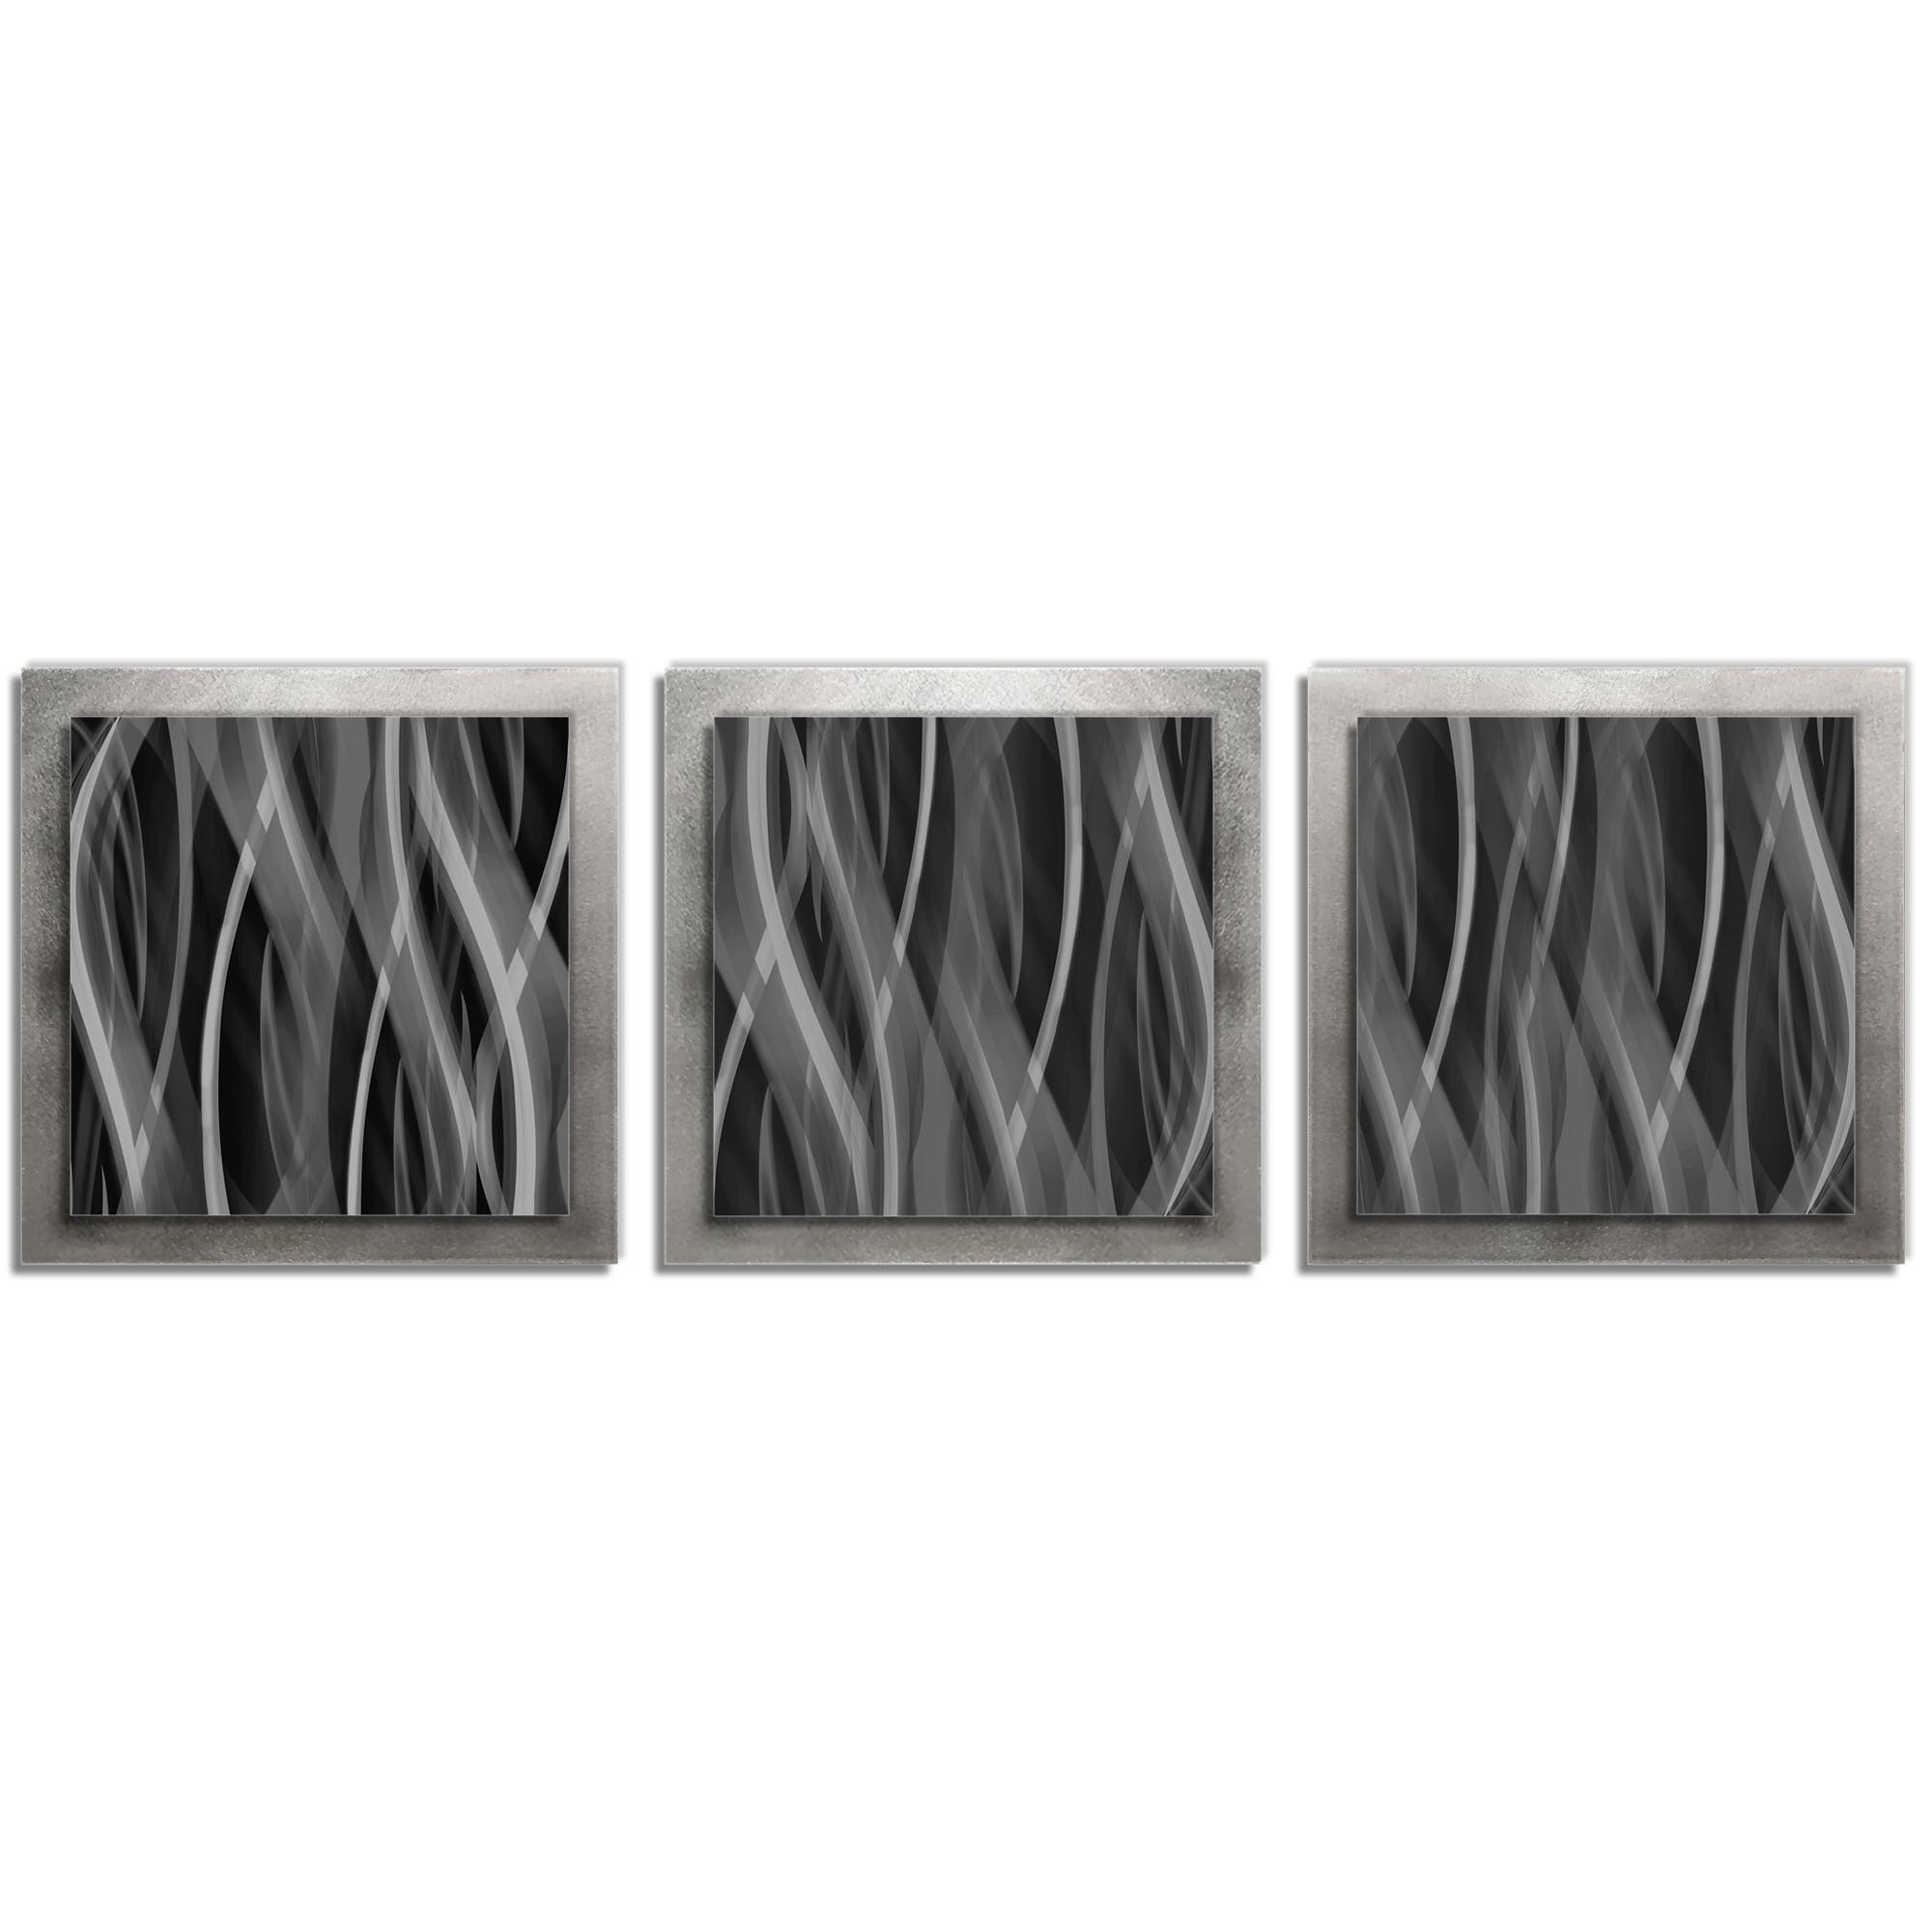 Gray Wall Art 'Pewter Essence' - 38x12 in. -Metal Artwork, Contemporary Decor - Modern Metal Painting